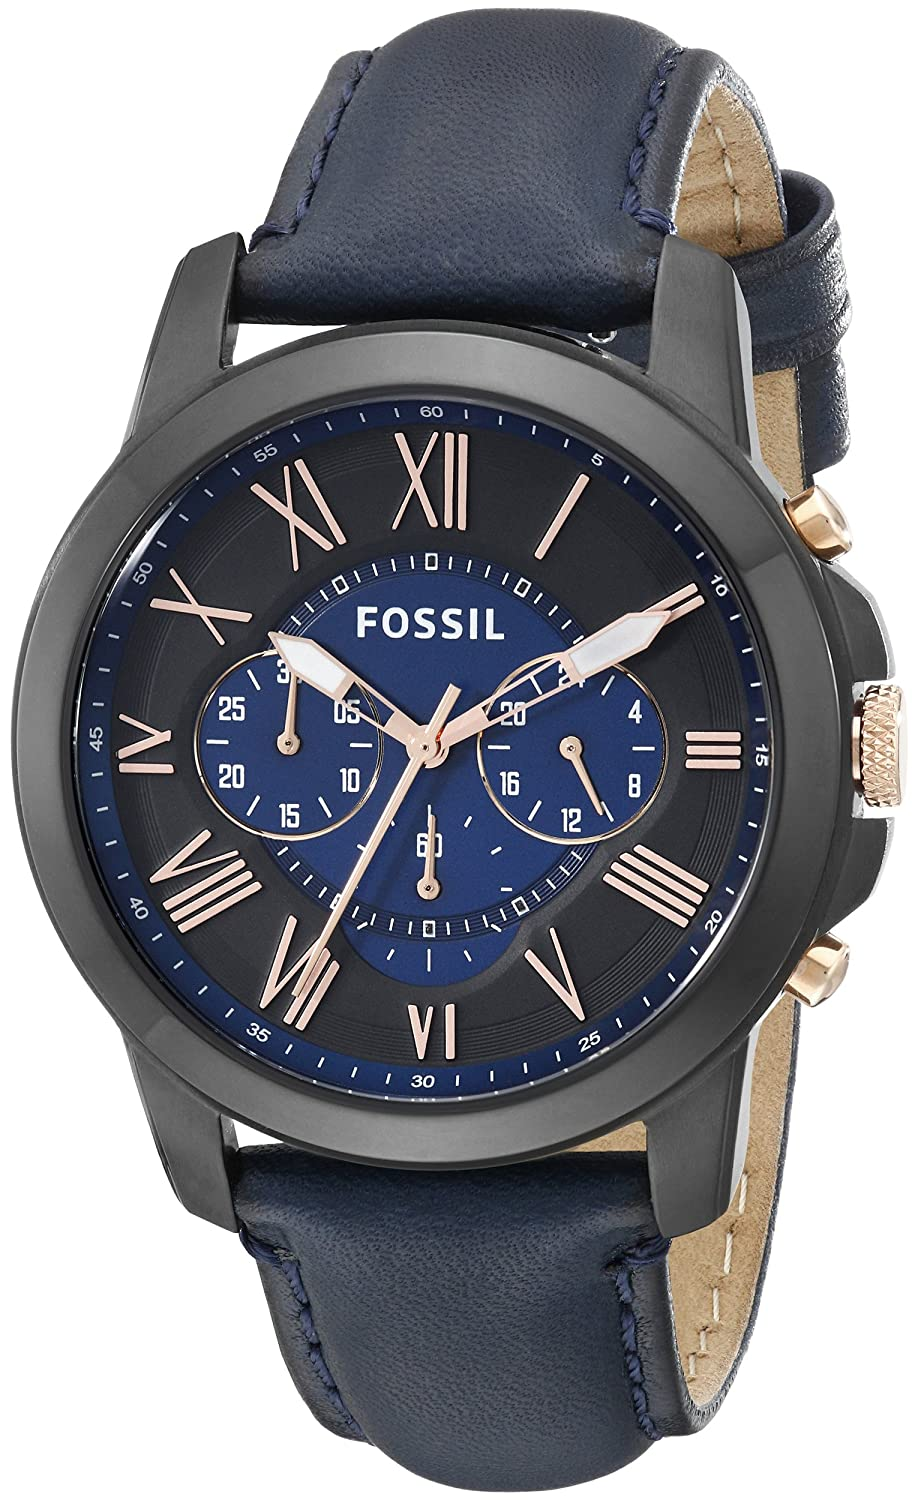 amazon com fossil men s fs5061 grant black stainless steel watch amazon com fossil men s fs5061 grant black stainless steel watch blue leather band fossil watches